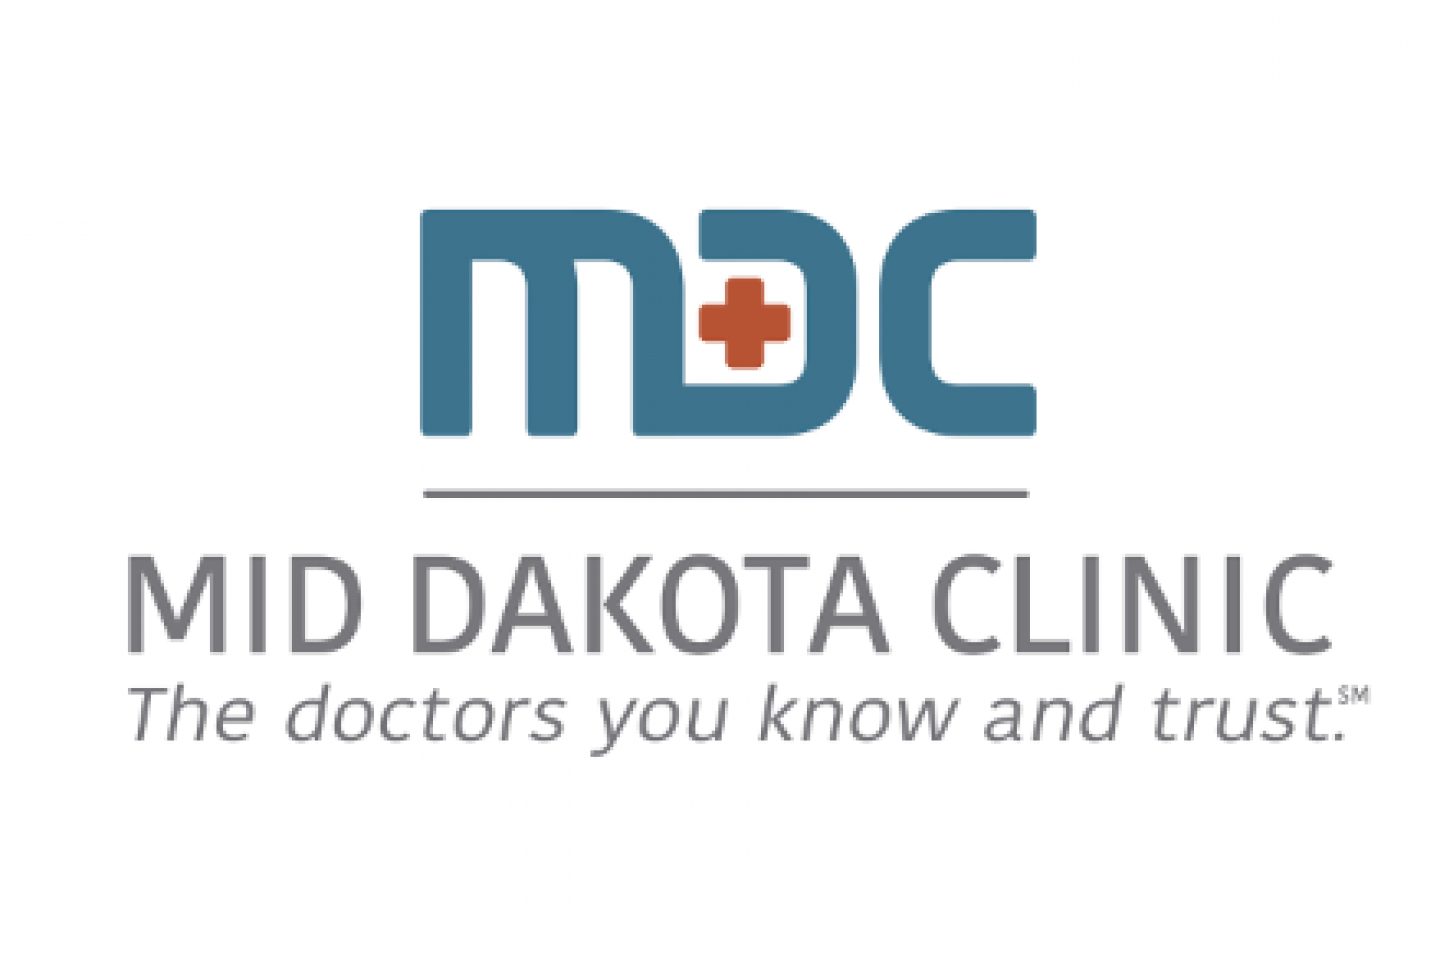 MID DAKOTA CLINIC